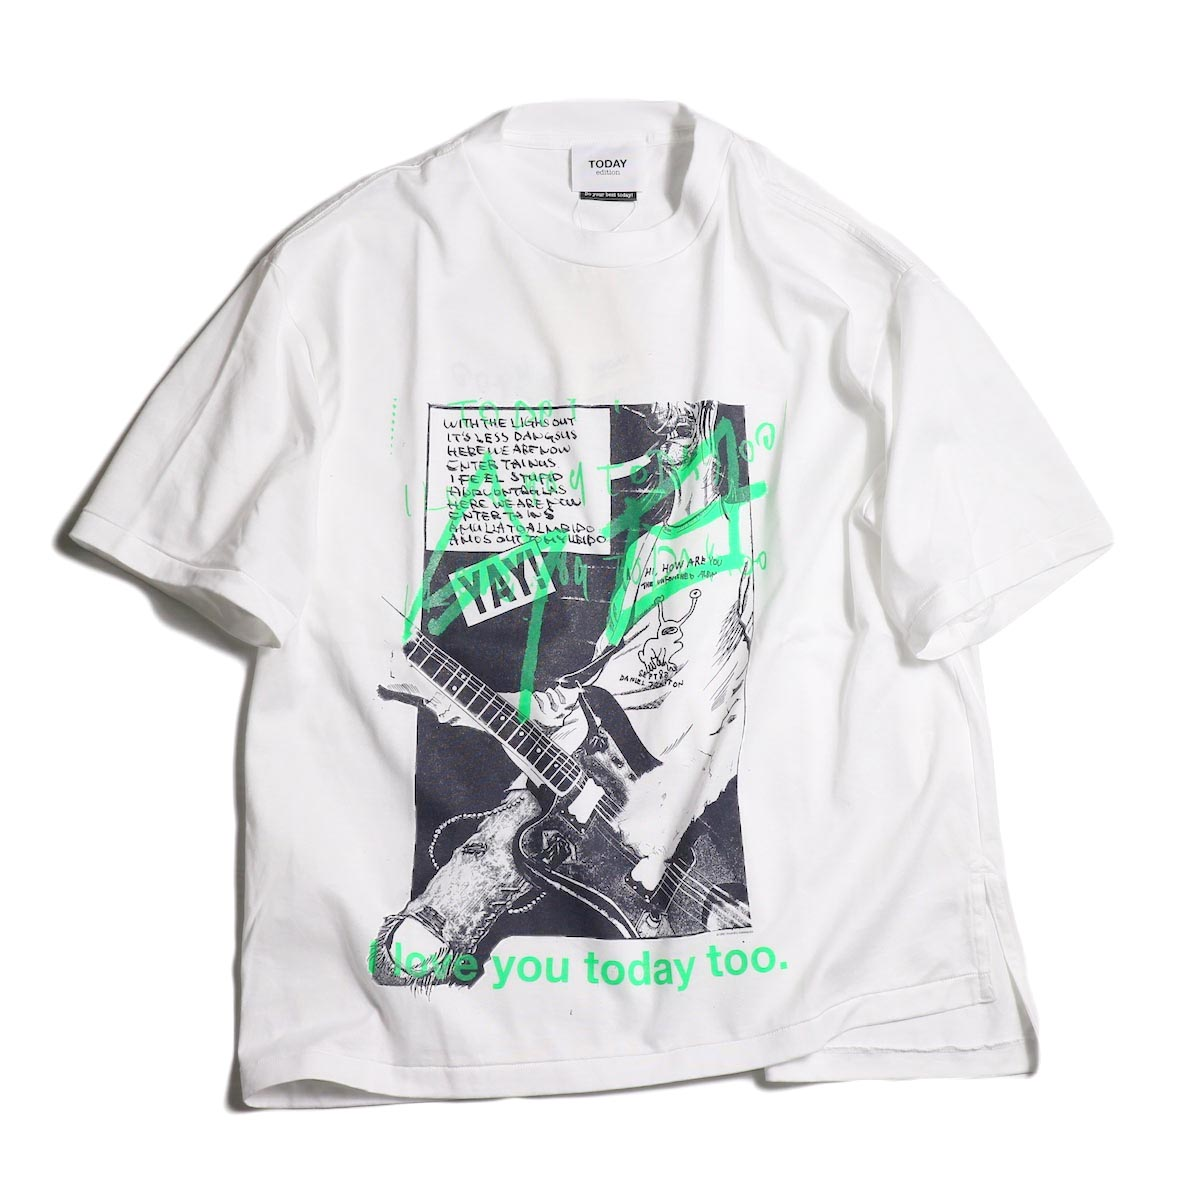 TODAY edition / drawing tee green -White